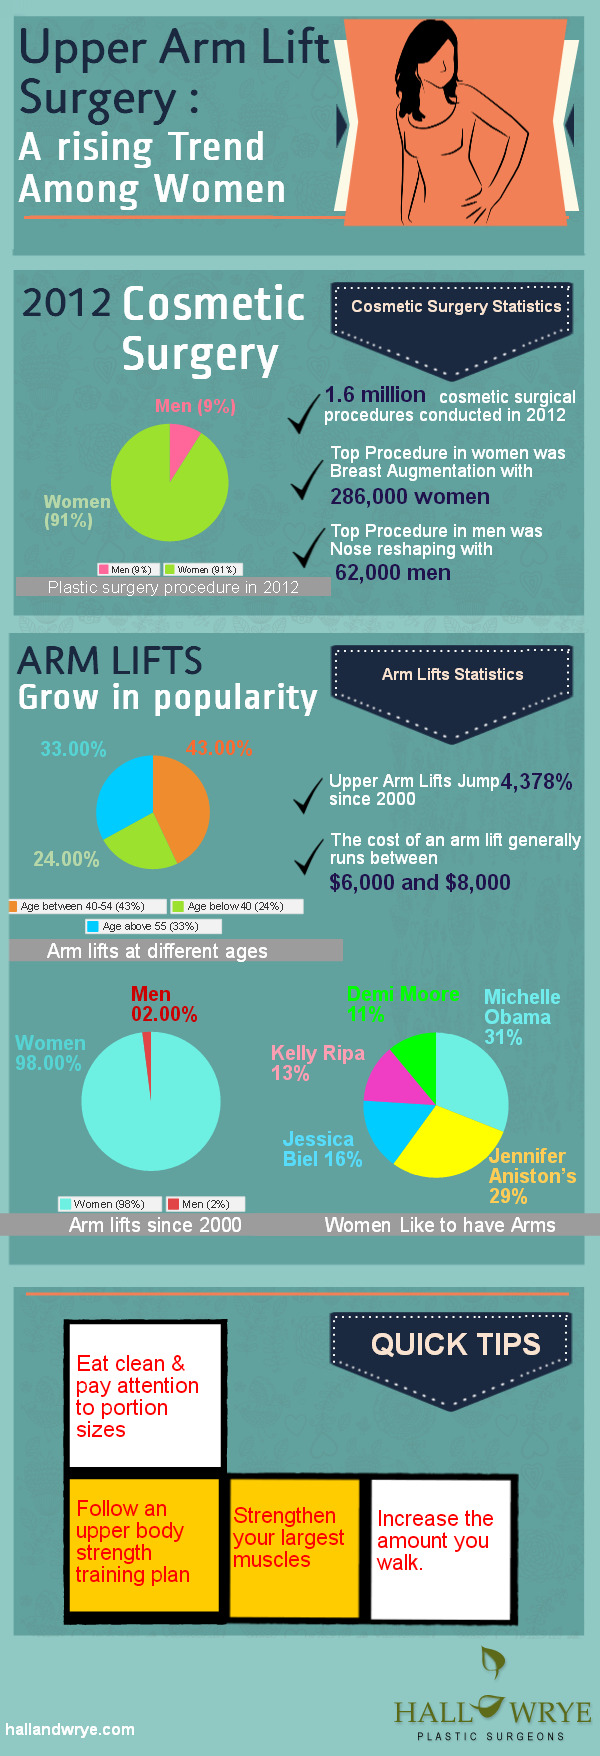 upper-arm-lift-surgery--a-rising-trend-among-women_525b8b8da9c3e